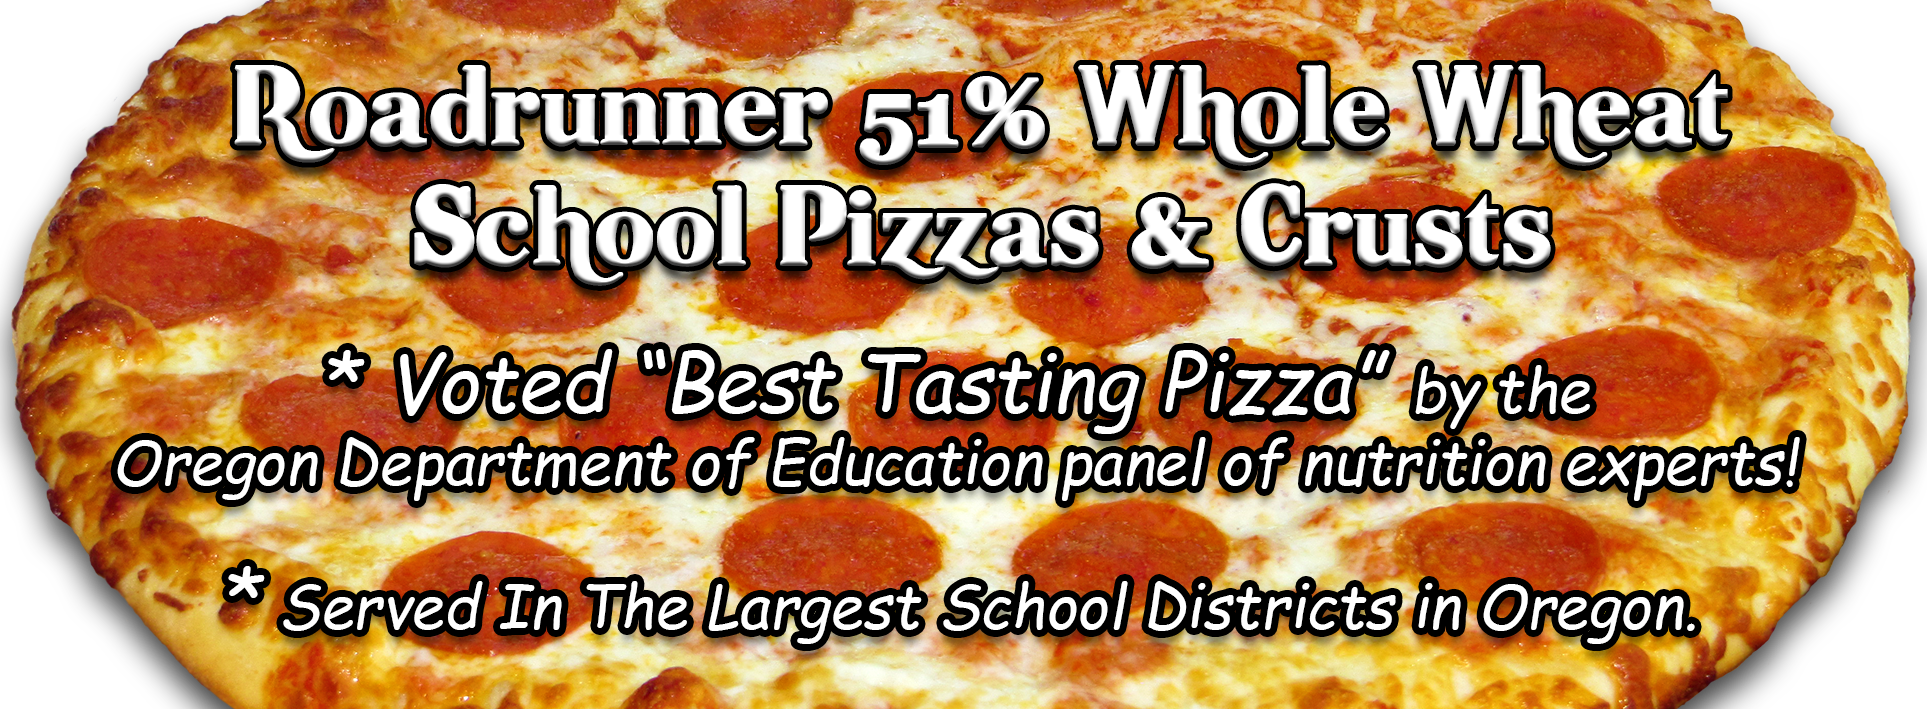 Roadrunner 51% Whole Wheat School Pizzas and Crusts